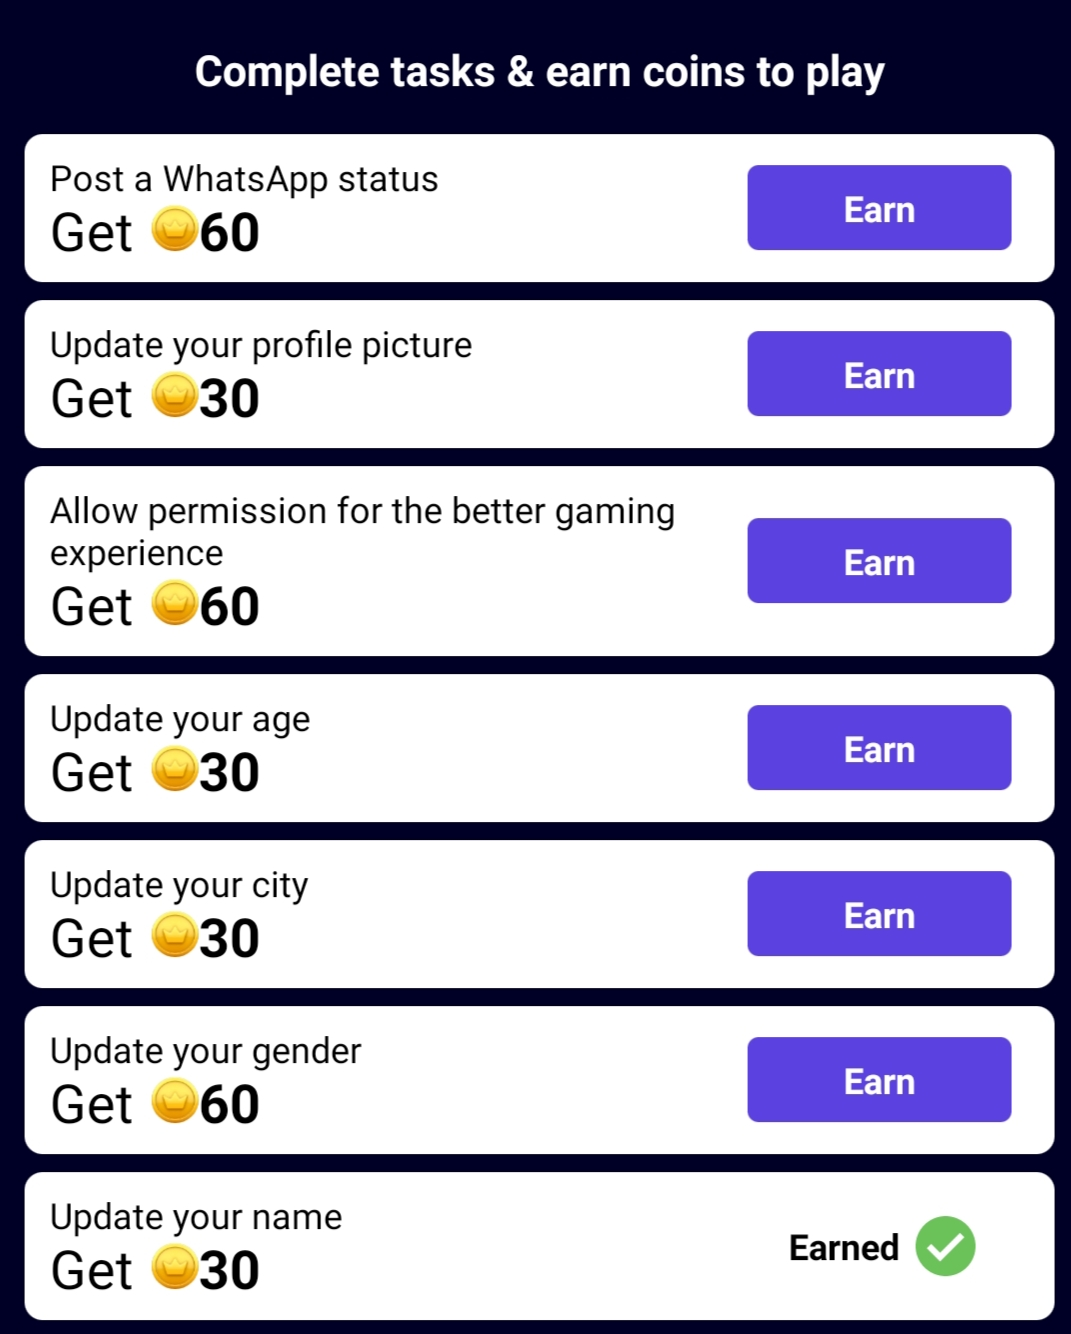 Qureka pro Referral Code | Refer & Earn 5000 Paytm | Apk Download